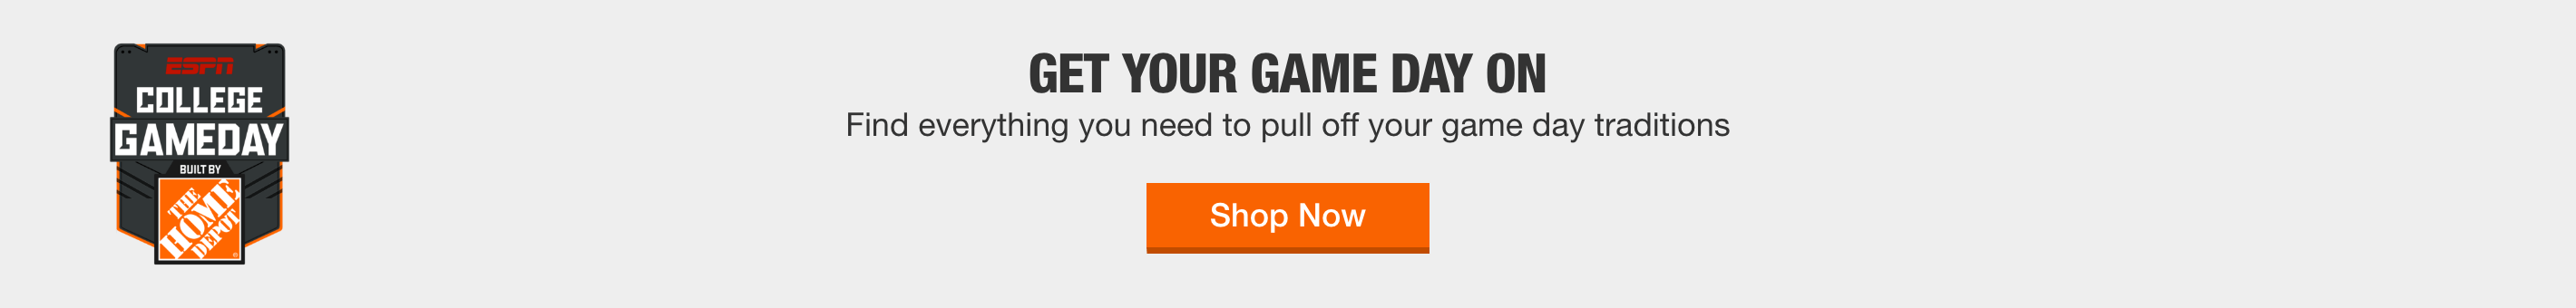 GET YOUR GAME DAY ON - Find everything you need to pull off your game day traditions